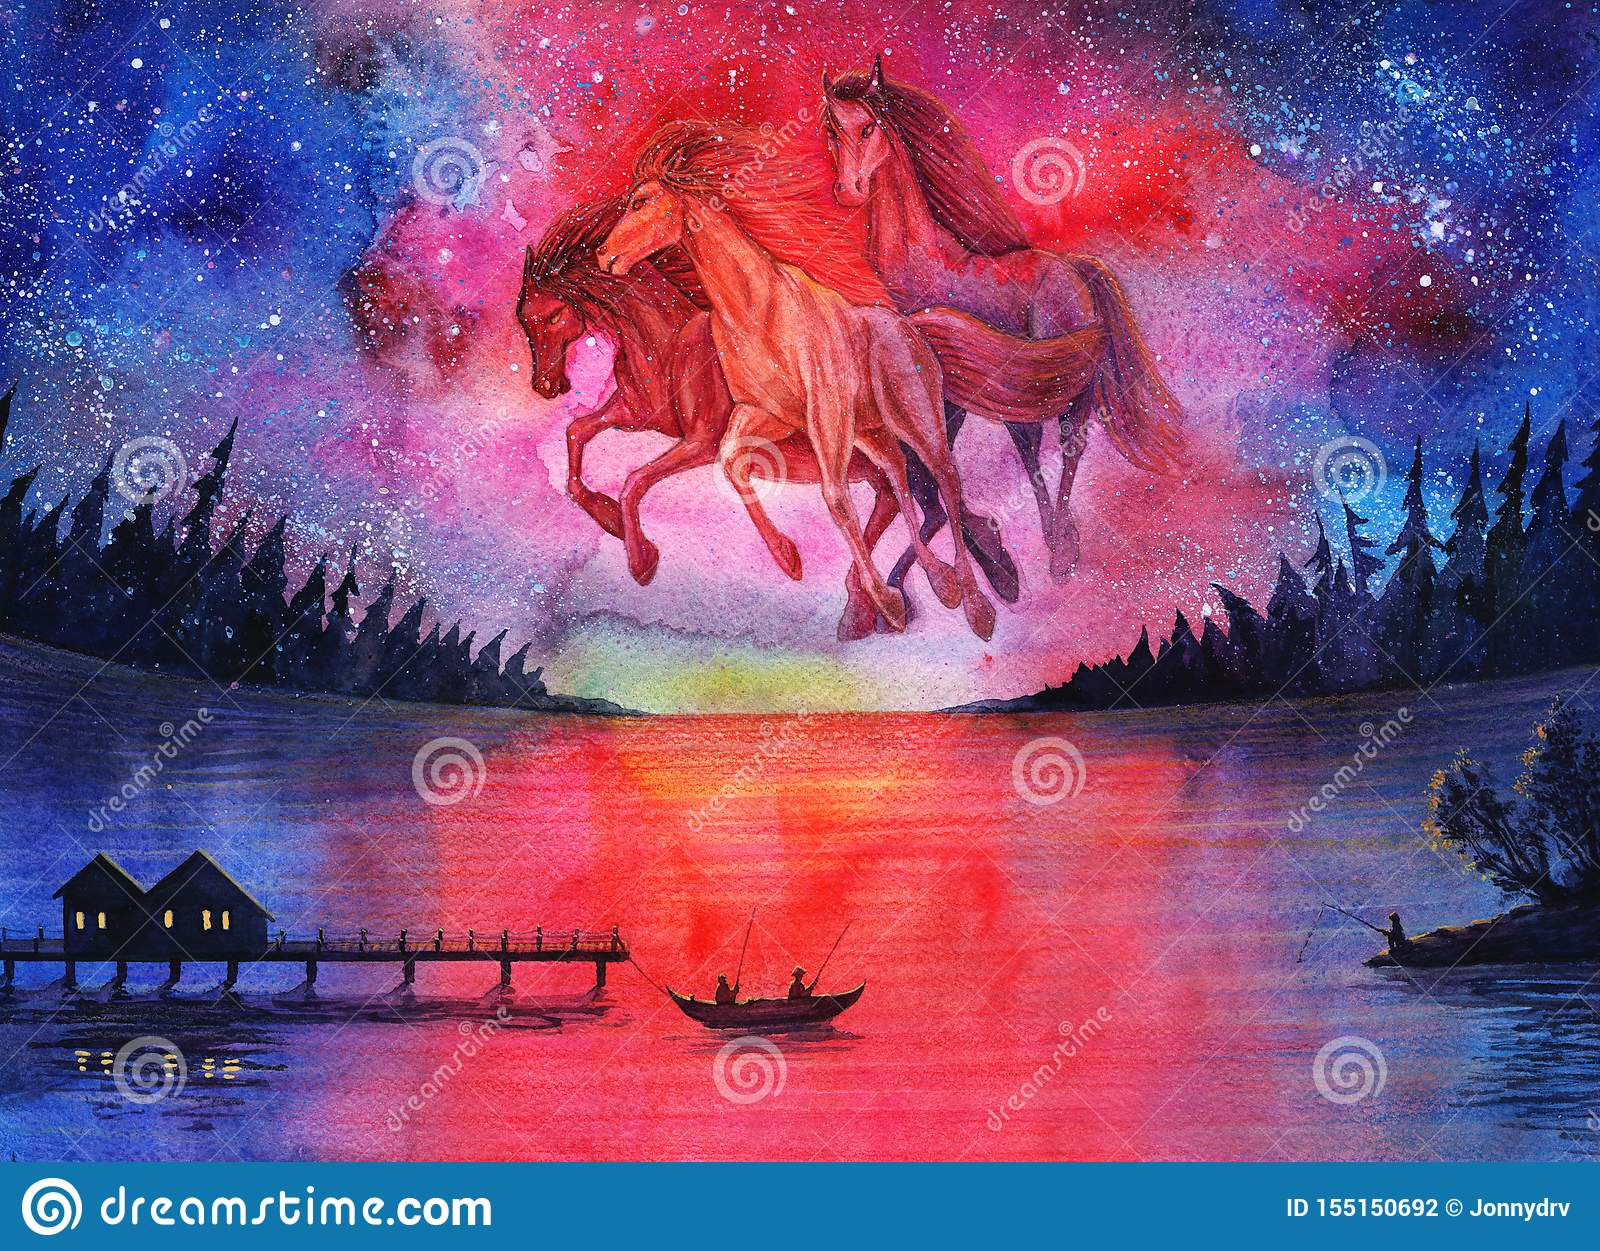 Watercolor Fantasy Cosmic Horses Landscape Beautiful Abstract Space Painting With Stars In Sky And Night Forest Galaxy Drawing A Stock Illustration Illustration Of Landscape Digital 155150692